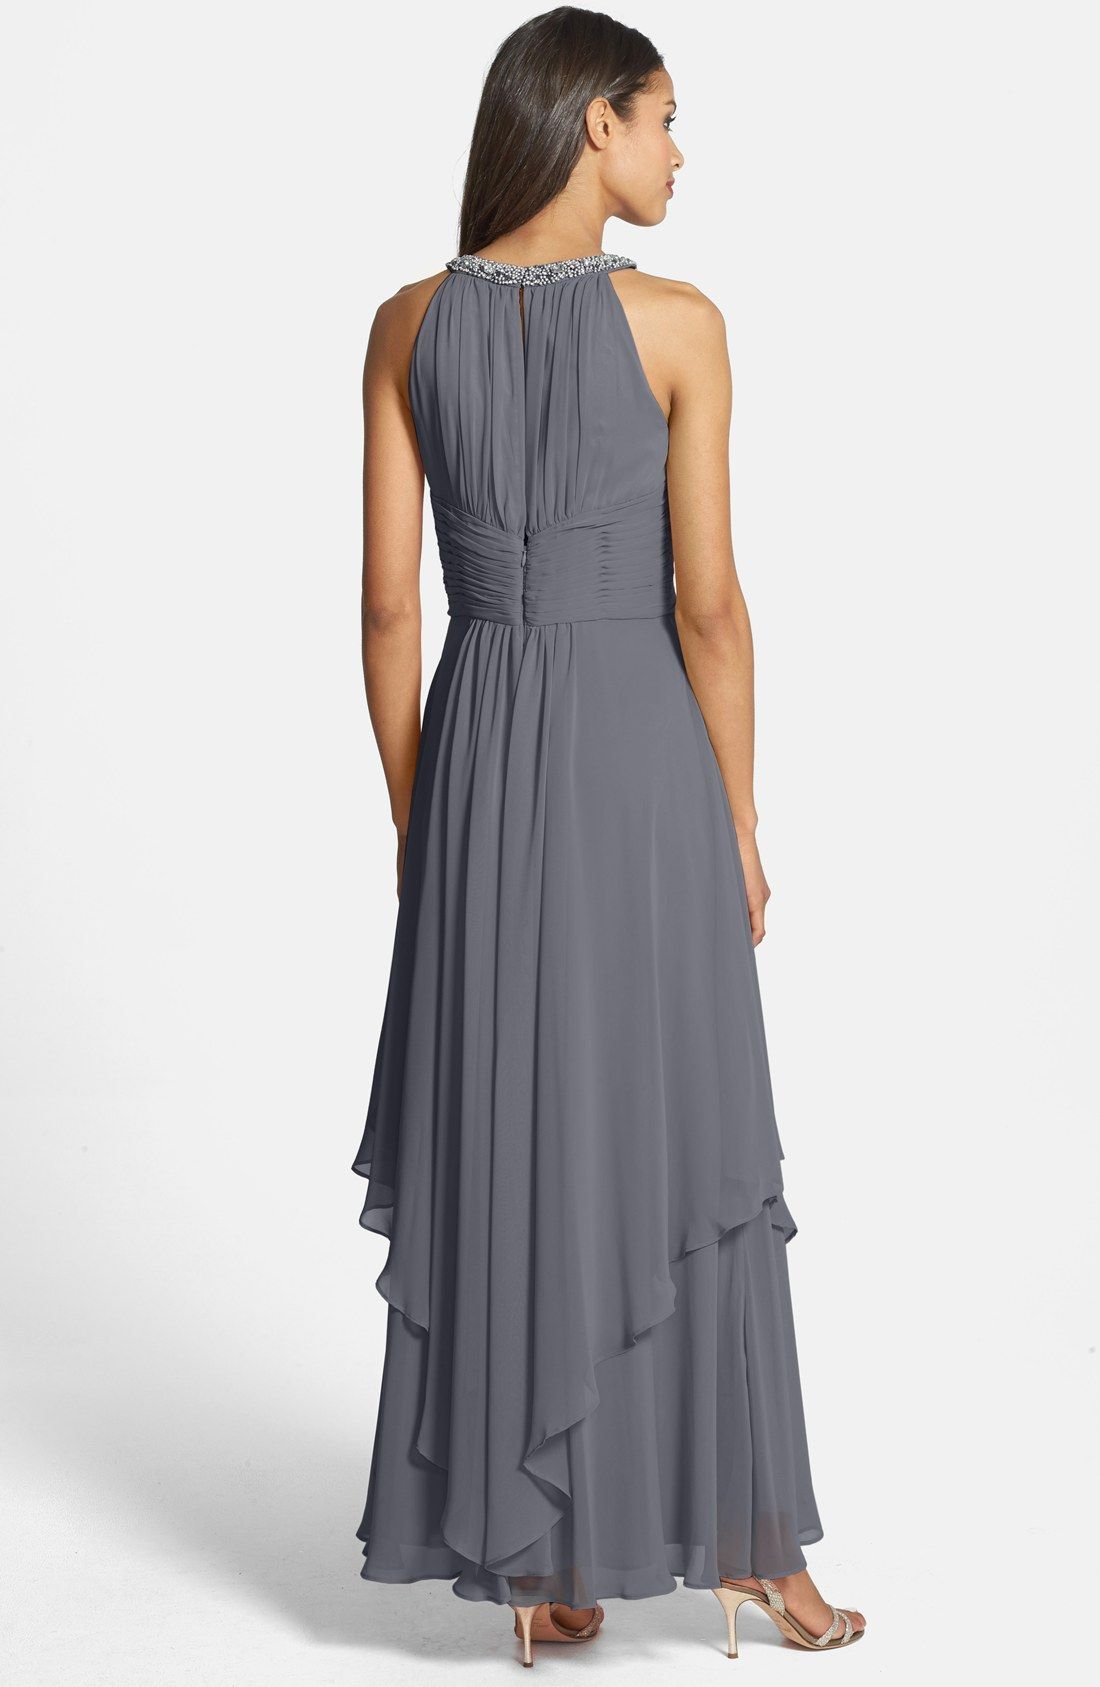 Eliza J Embellished Tiered Chiffon Halter Gown | A1 WEDDING EVENTS ...